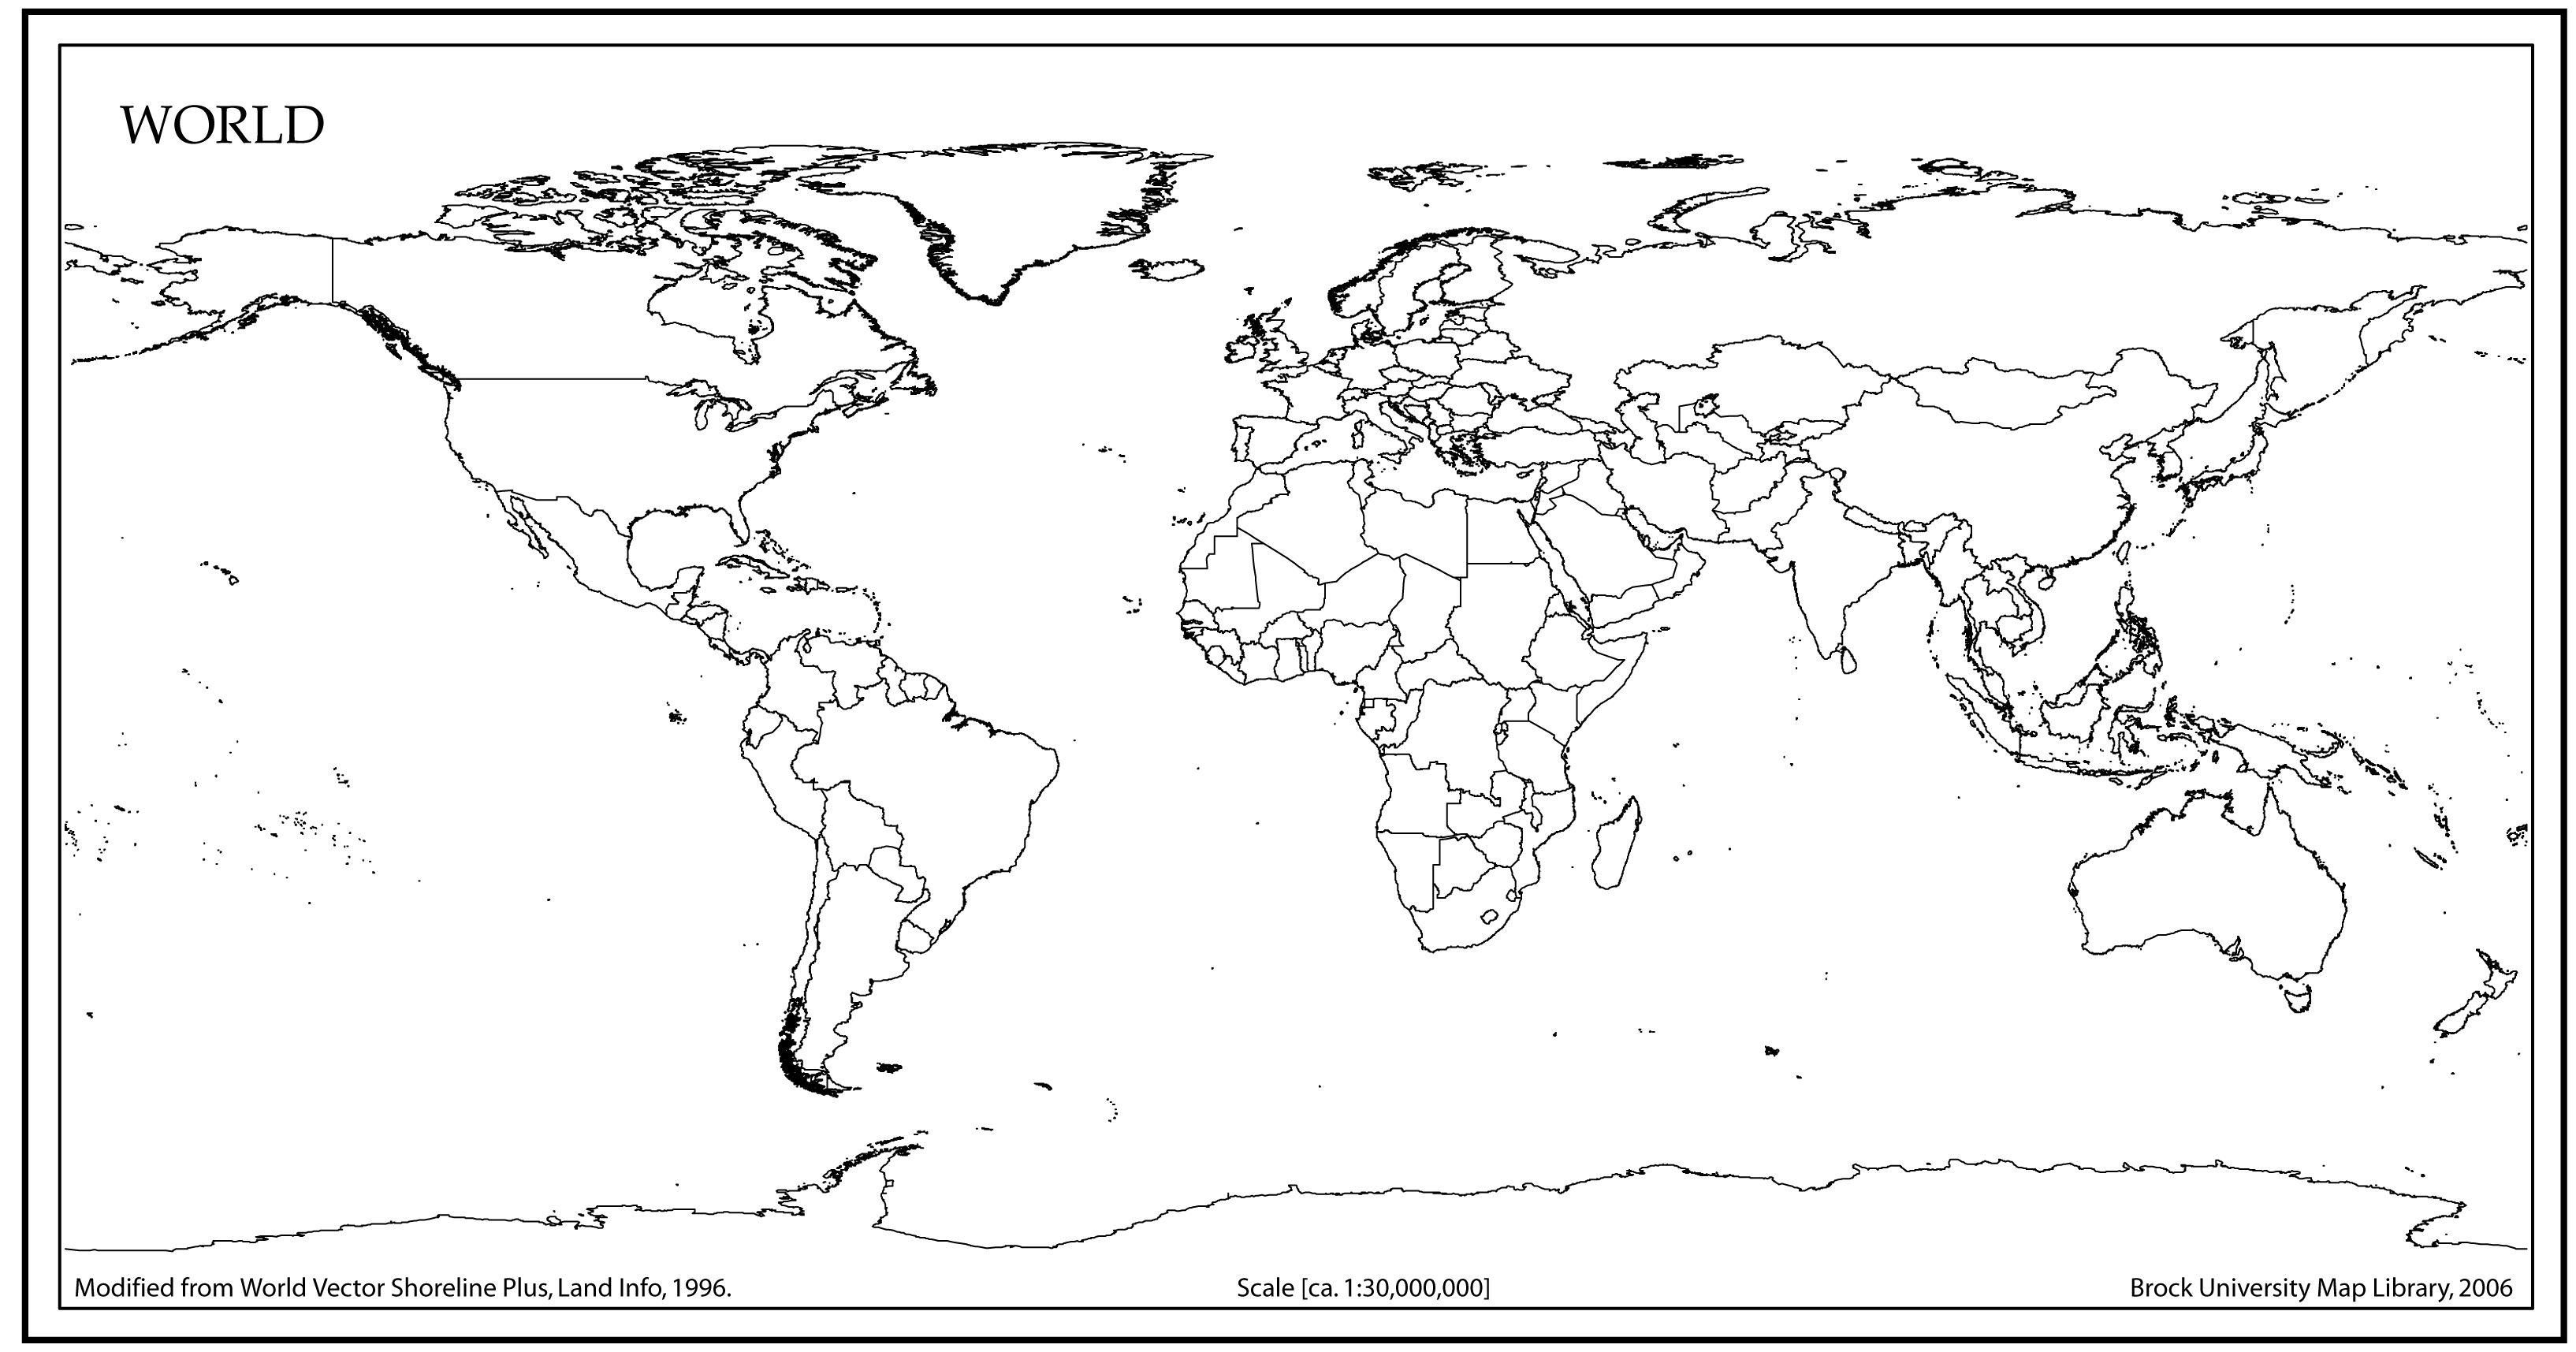 Free Map Of The World Showing Countries.World Map Outline With Countries World Map World Map Outline